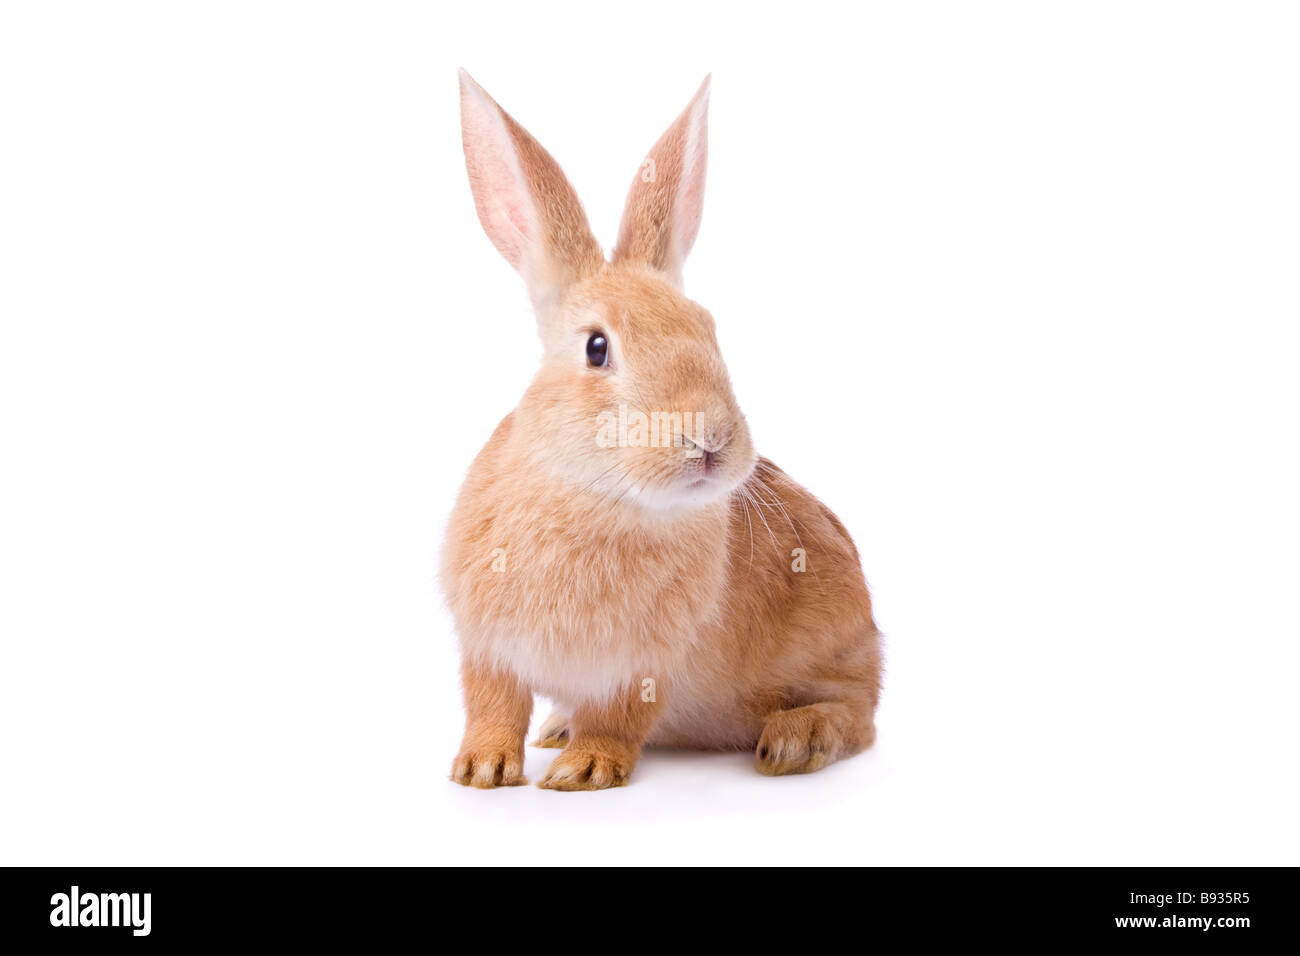 Curious young red rabbit isolated on white background /// easter bunny cut out white background cutout cute watching - Stock Image